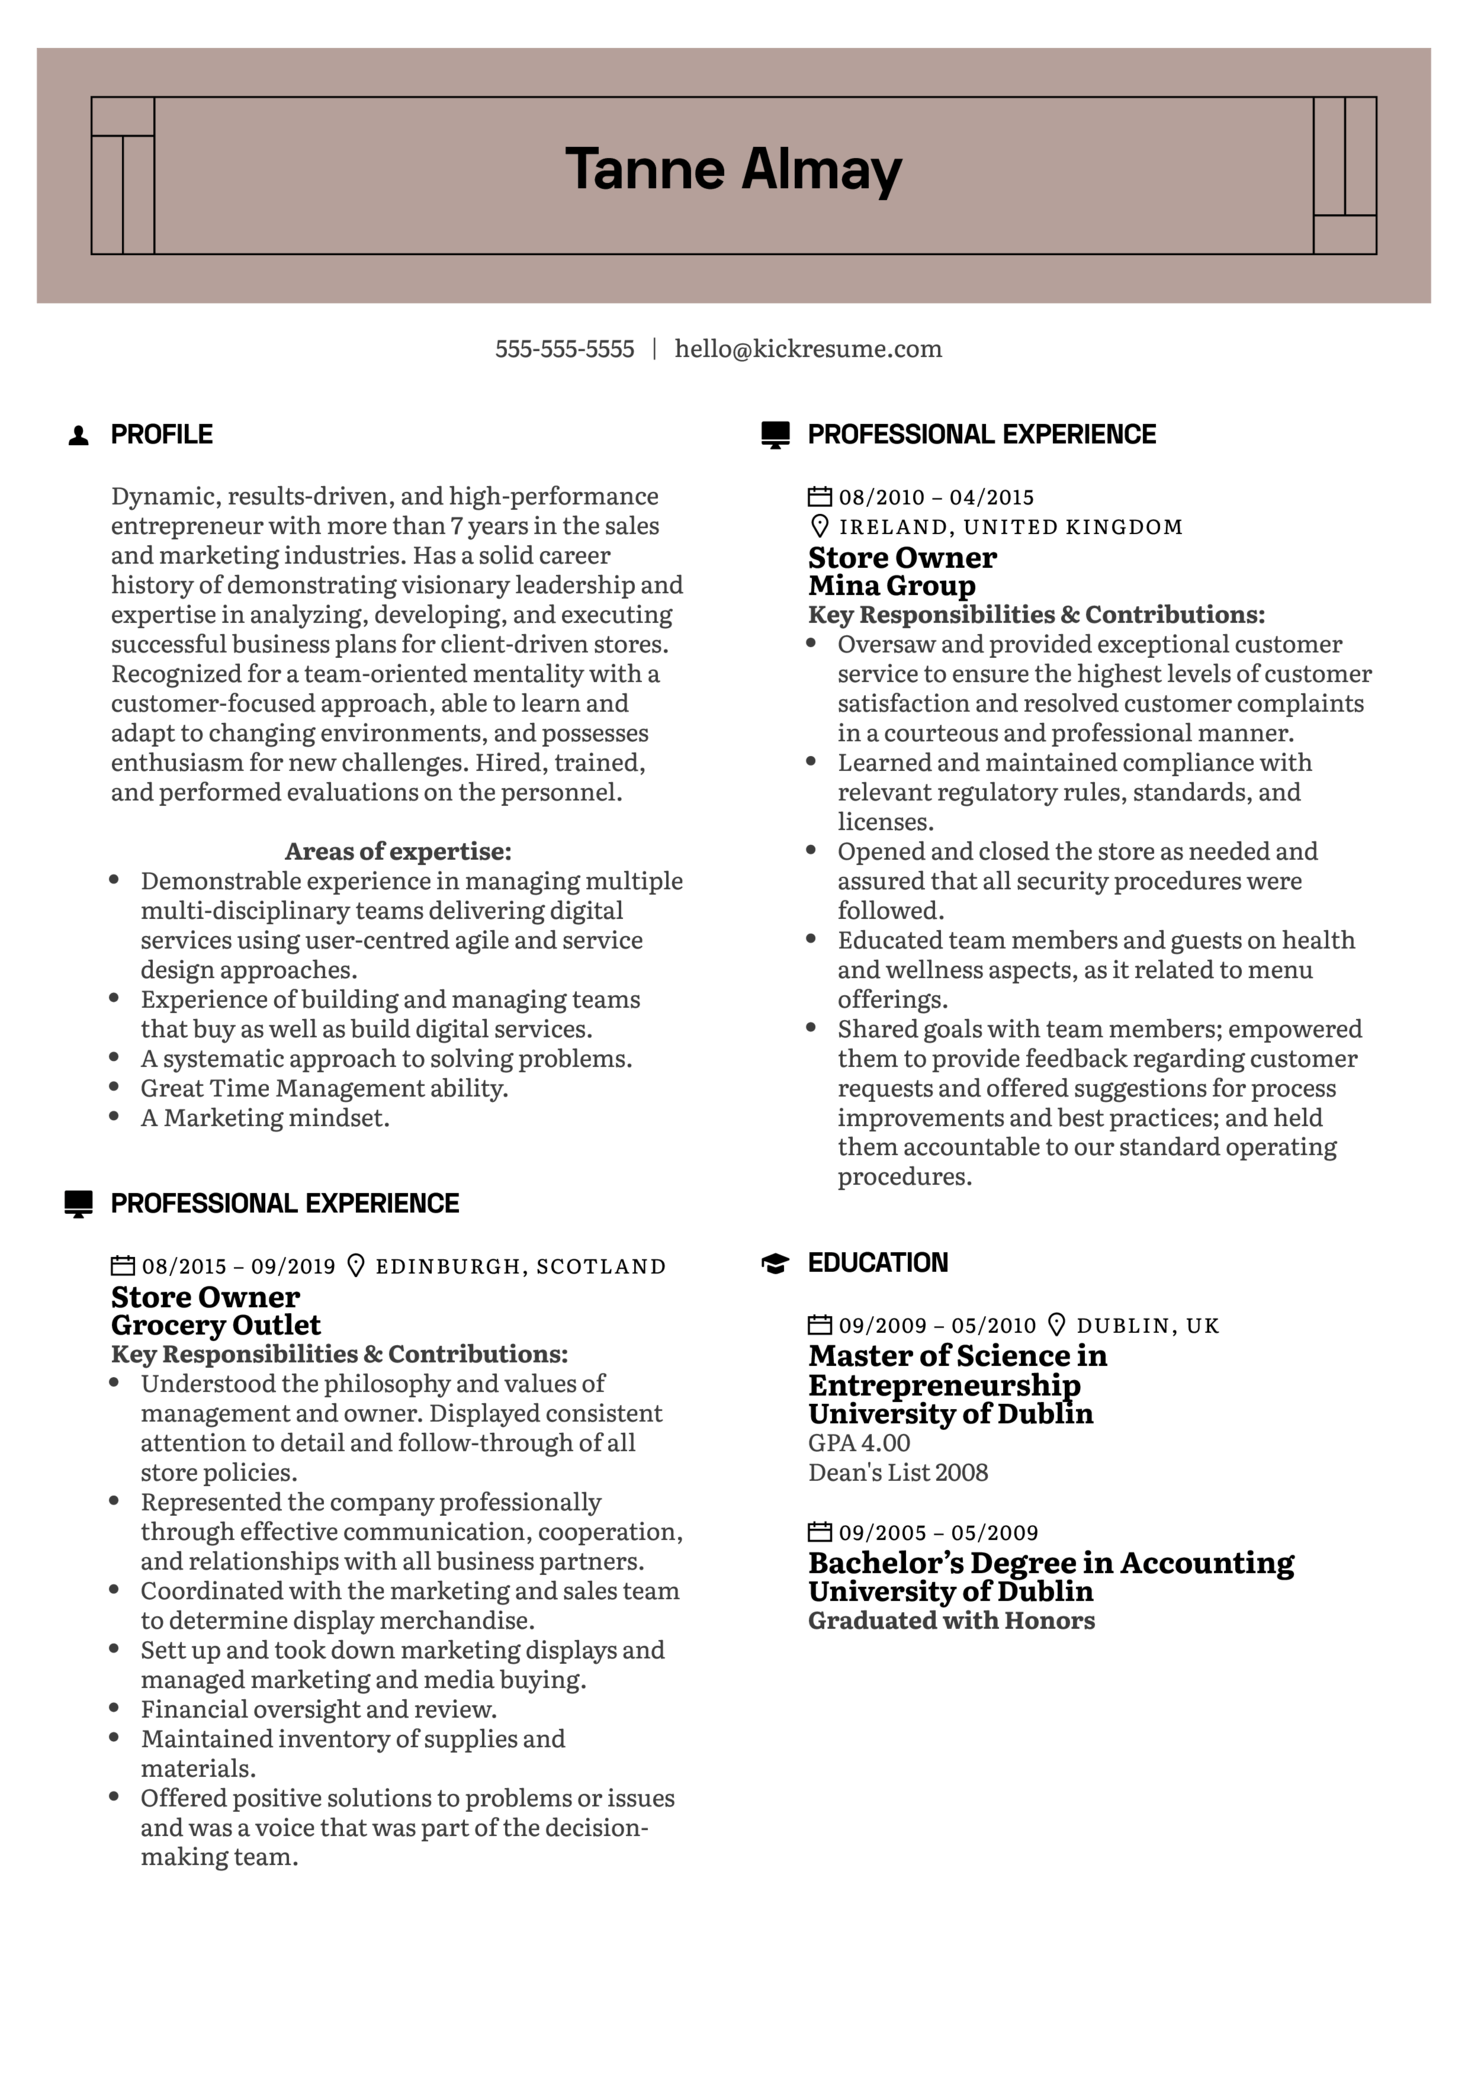 Store Owner Resume Example (Part 1)